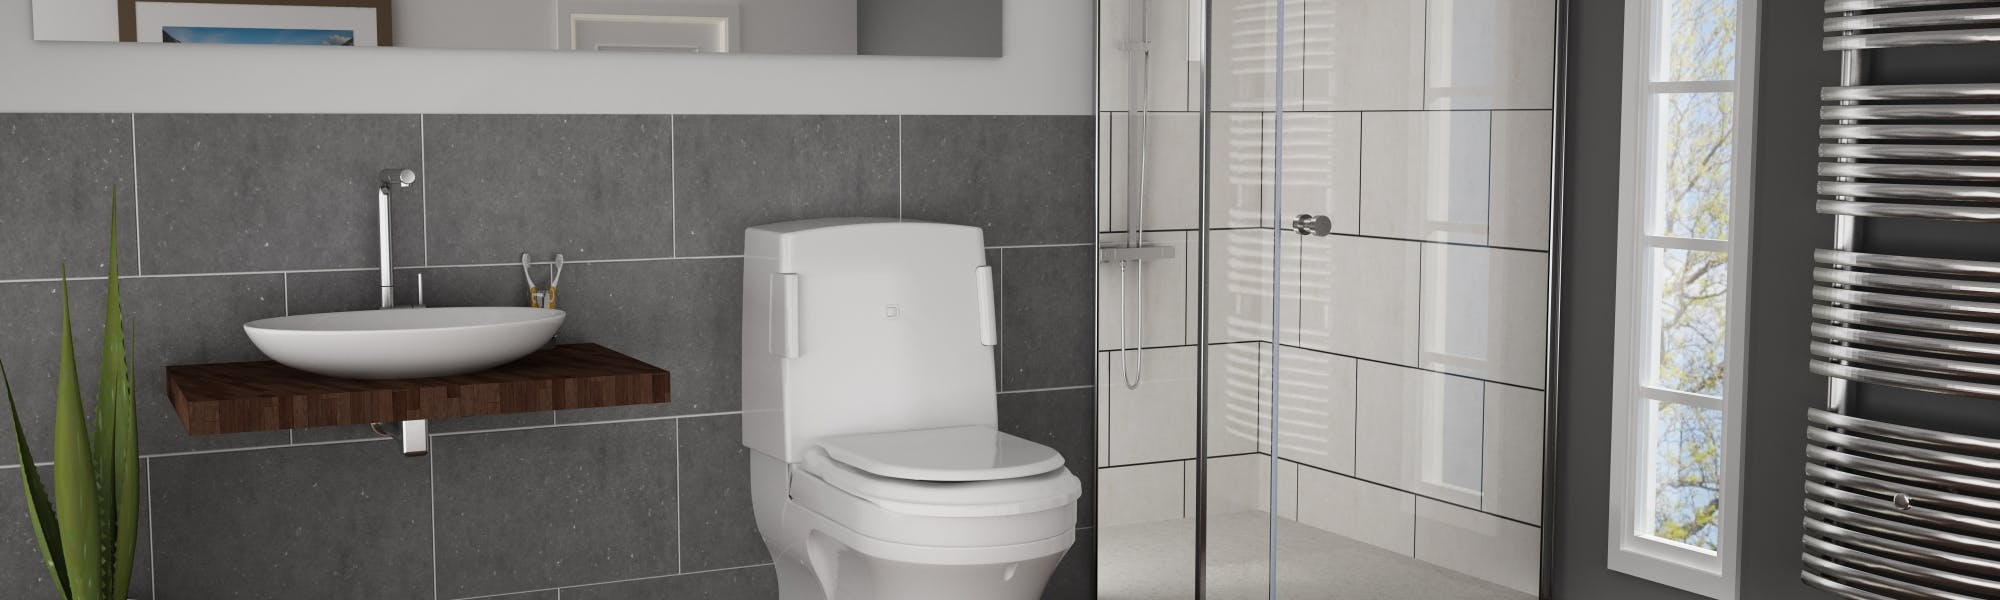 Disabled Toilets | Toilets For The Disabled | Designed And Installed By More Ability